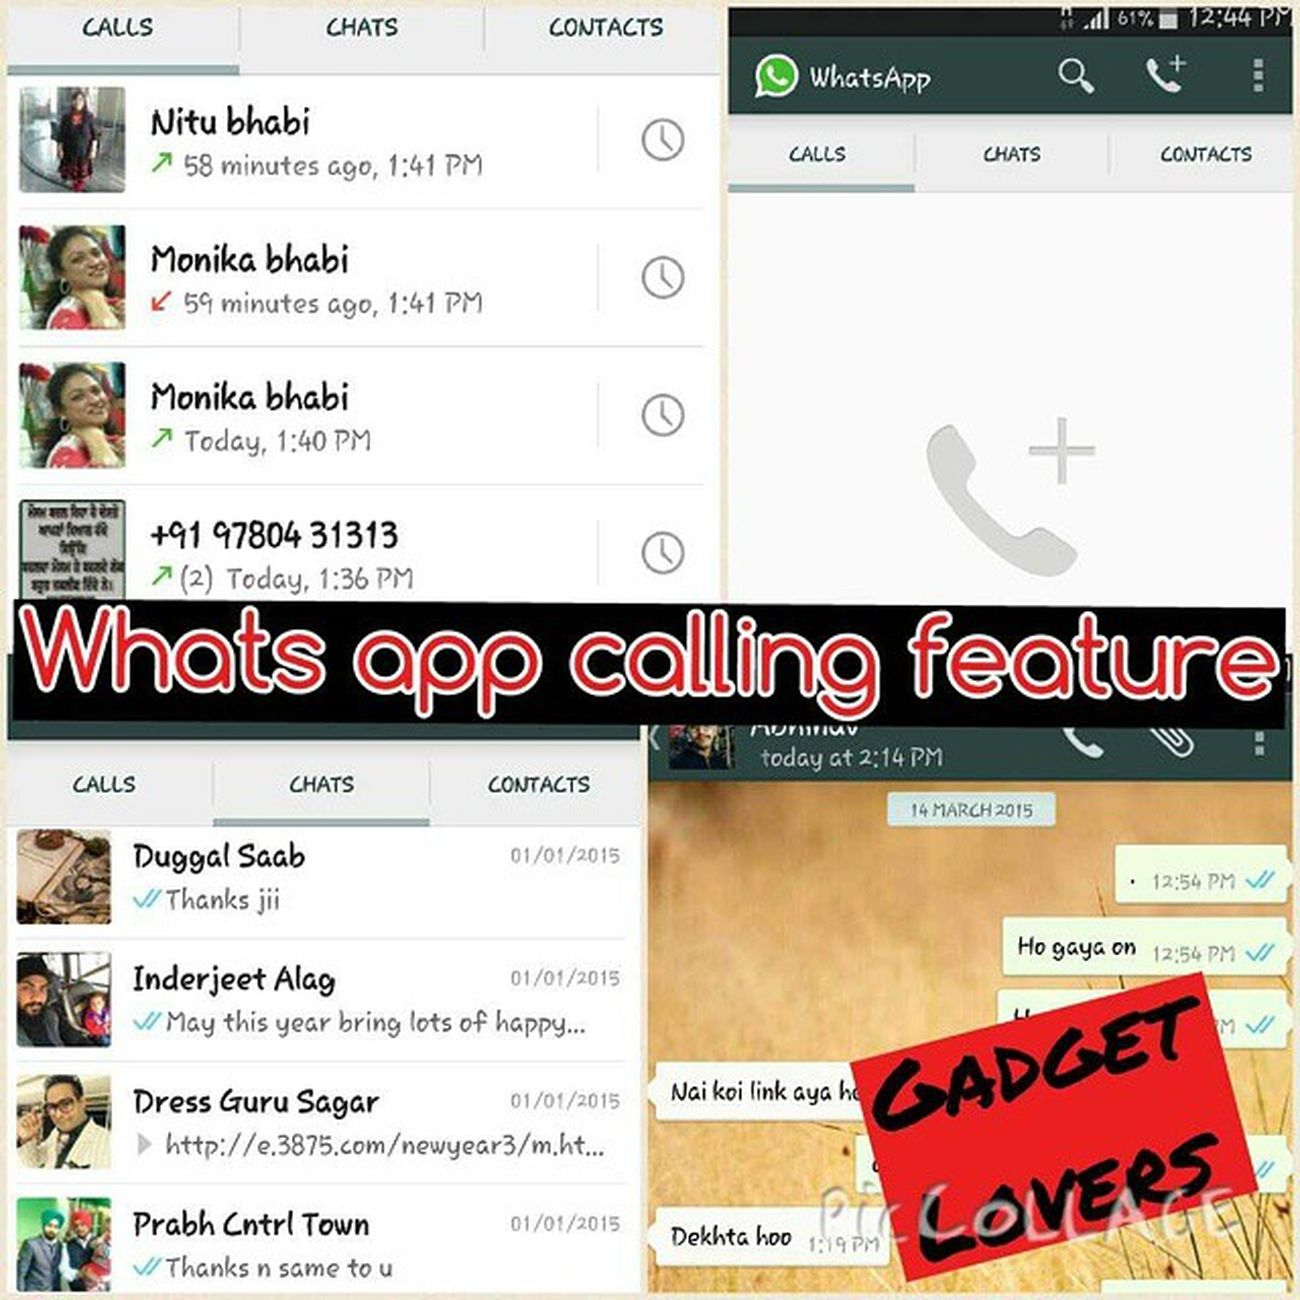 WhatsApp Calling Feature need Activation Gadget Android Lovers PicCollage  For activation message me on my whats app no +91 9888887248